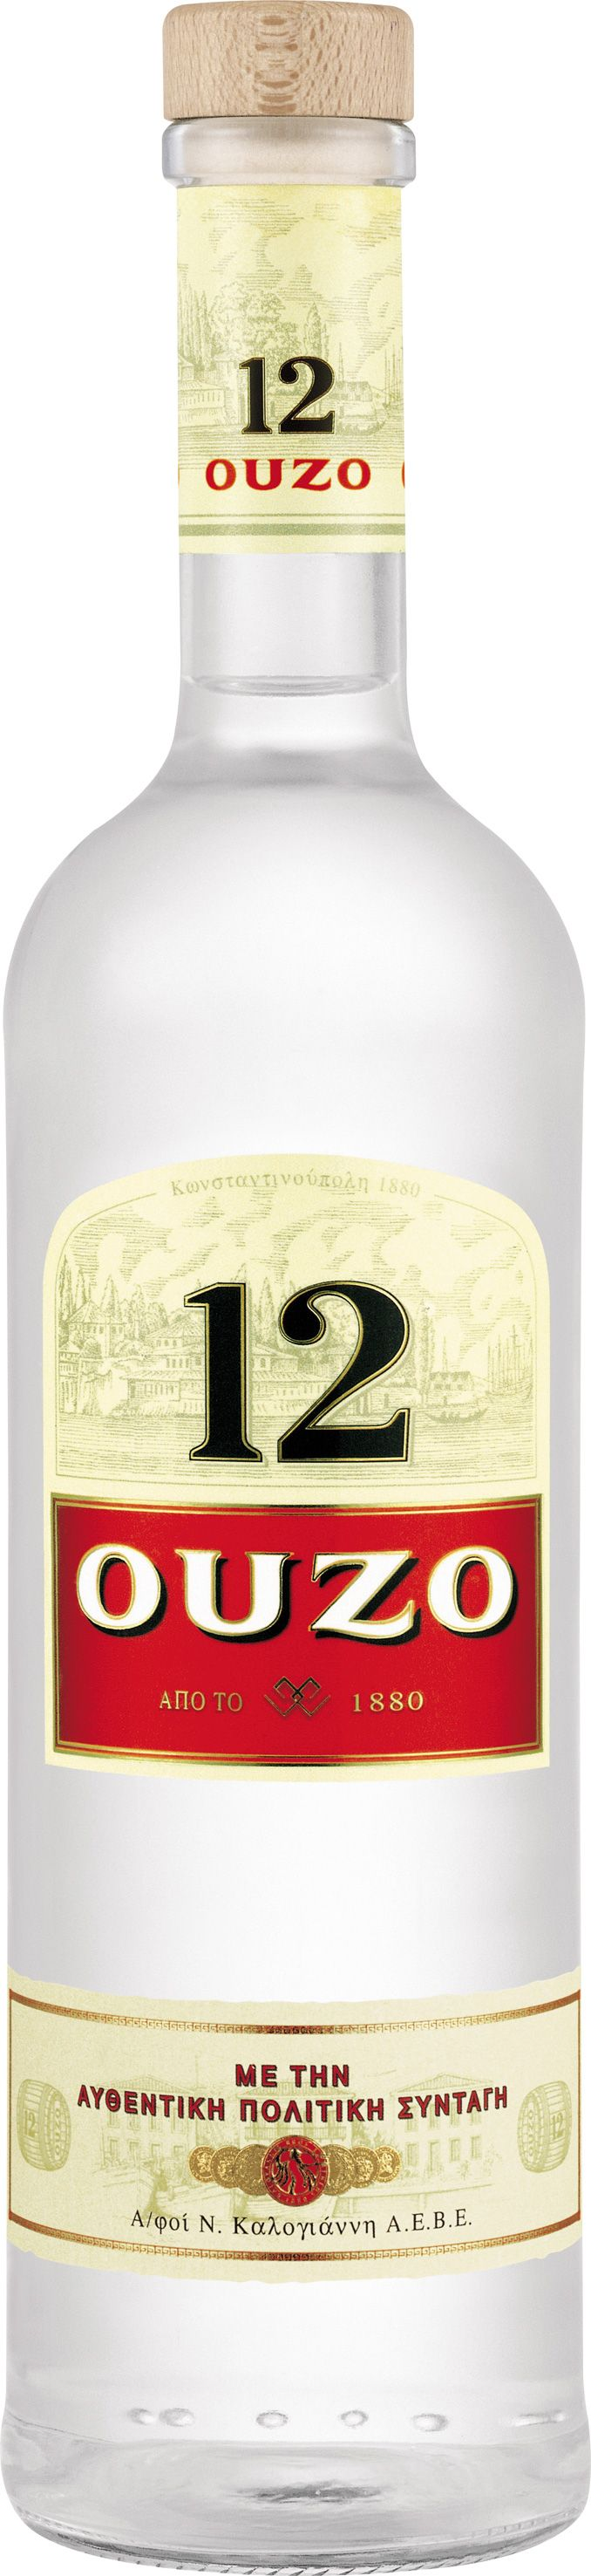 ~Ouzo 12 1 litre | The House of Beccaria